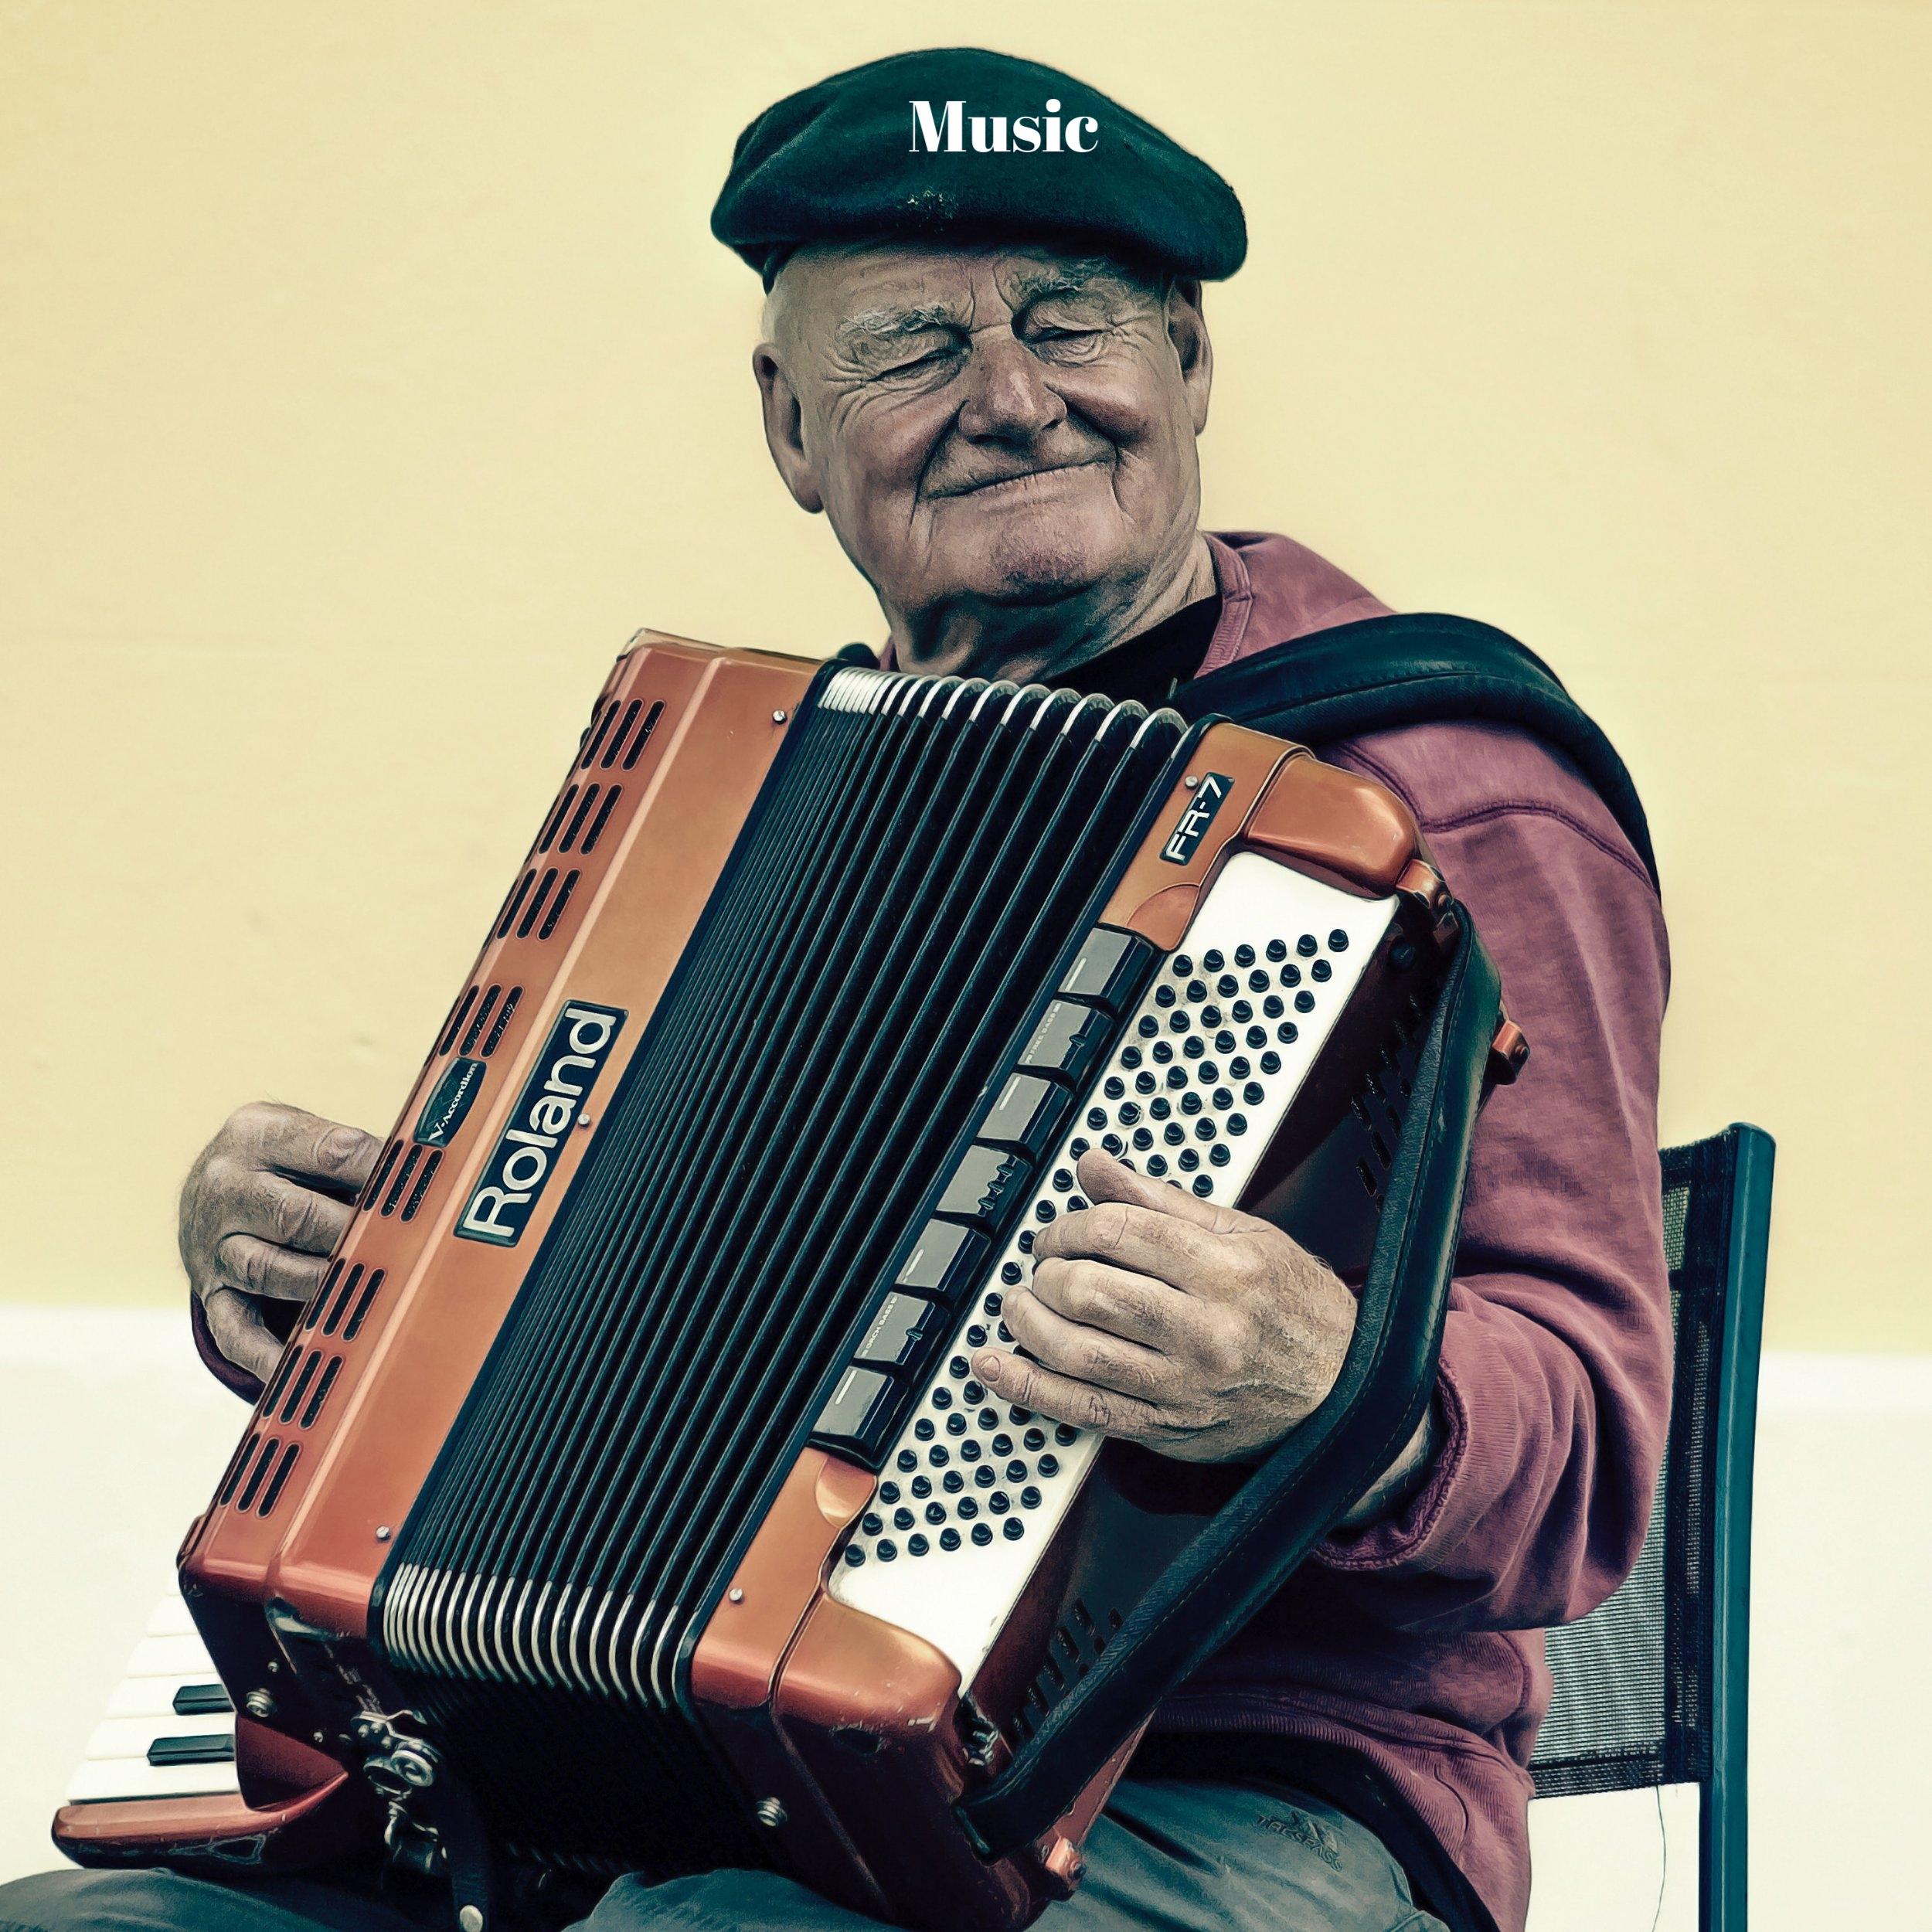 accordion-elderly-man-228842.jpg